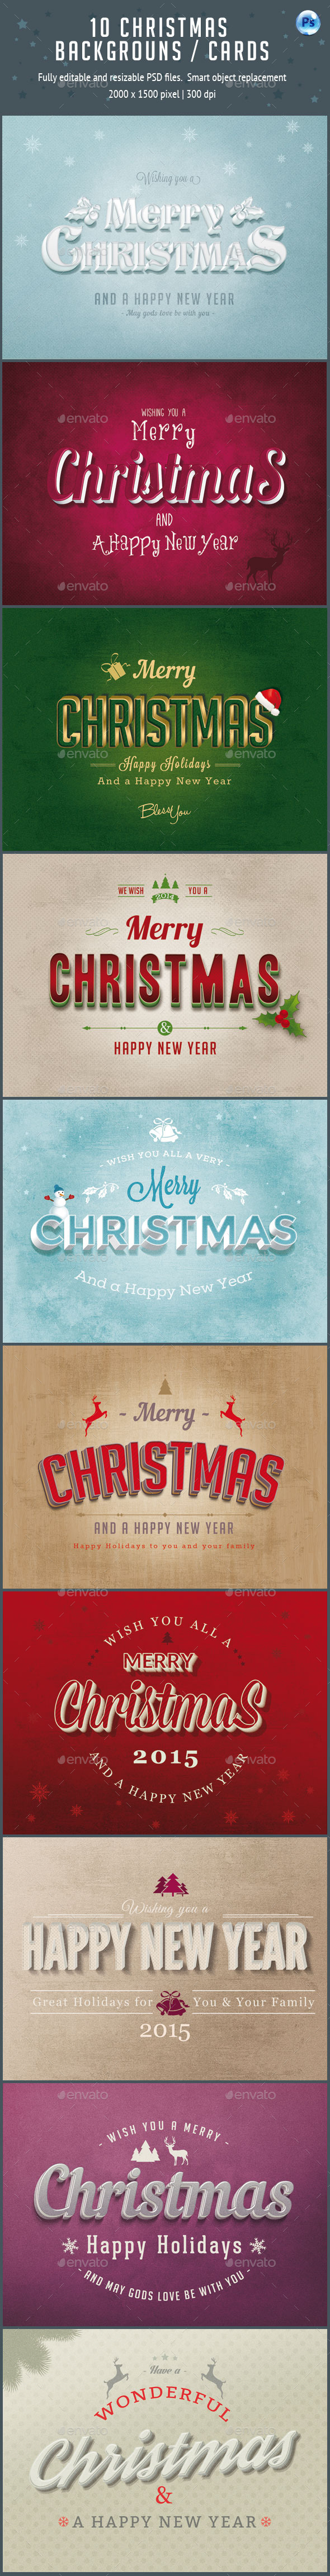 GraphicRiver 10 Christmas Cards Backgrounds 9377129